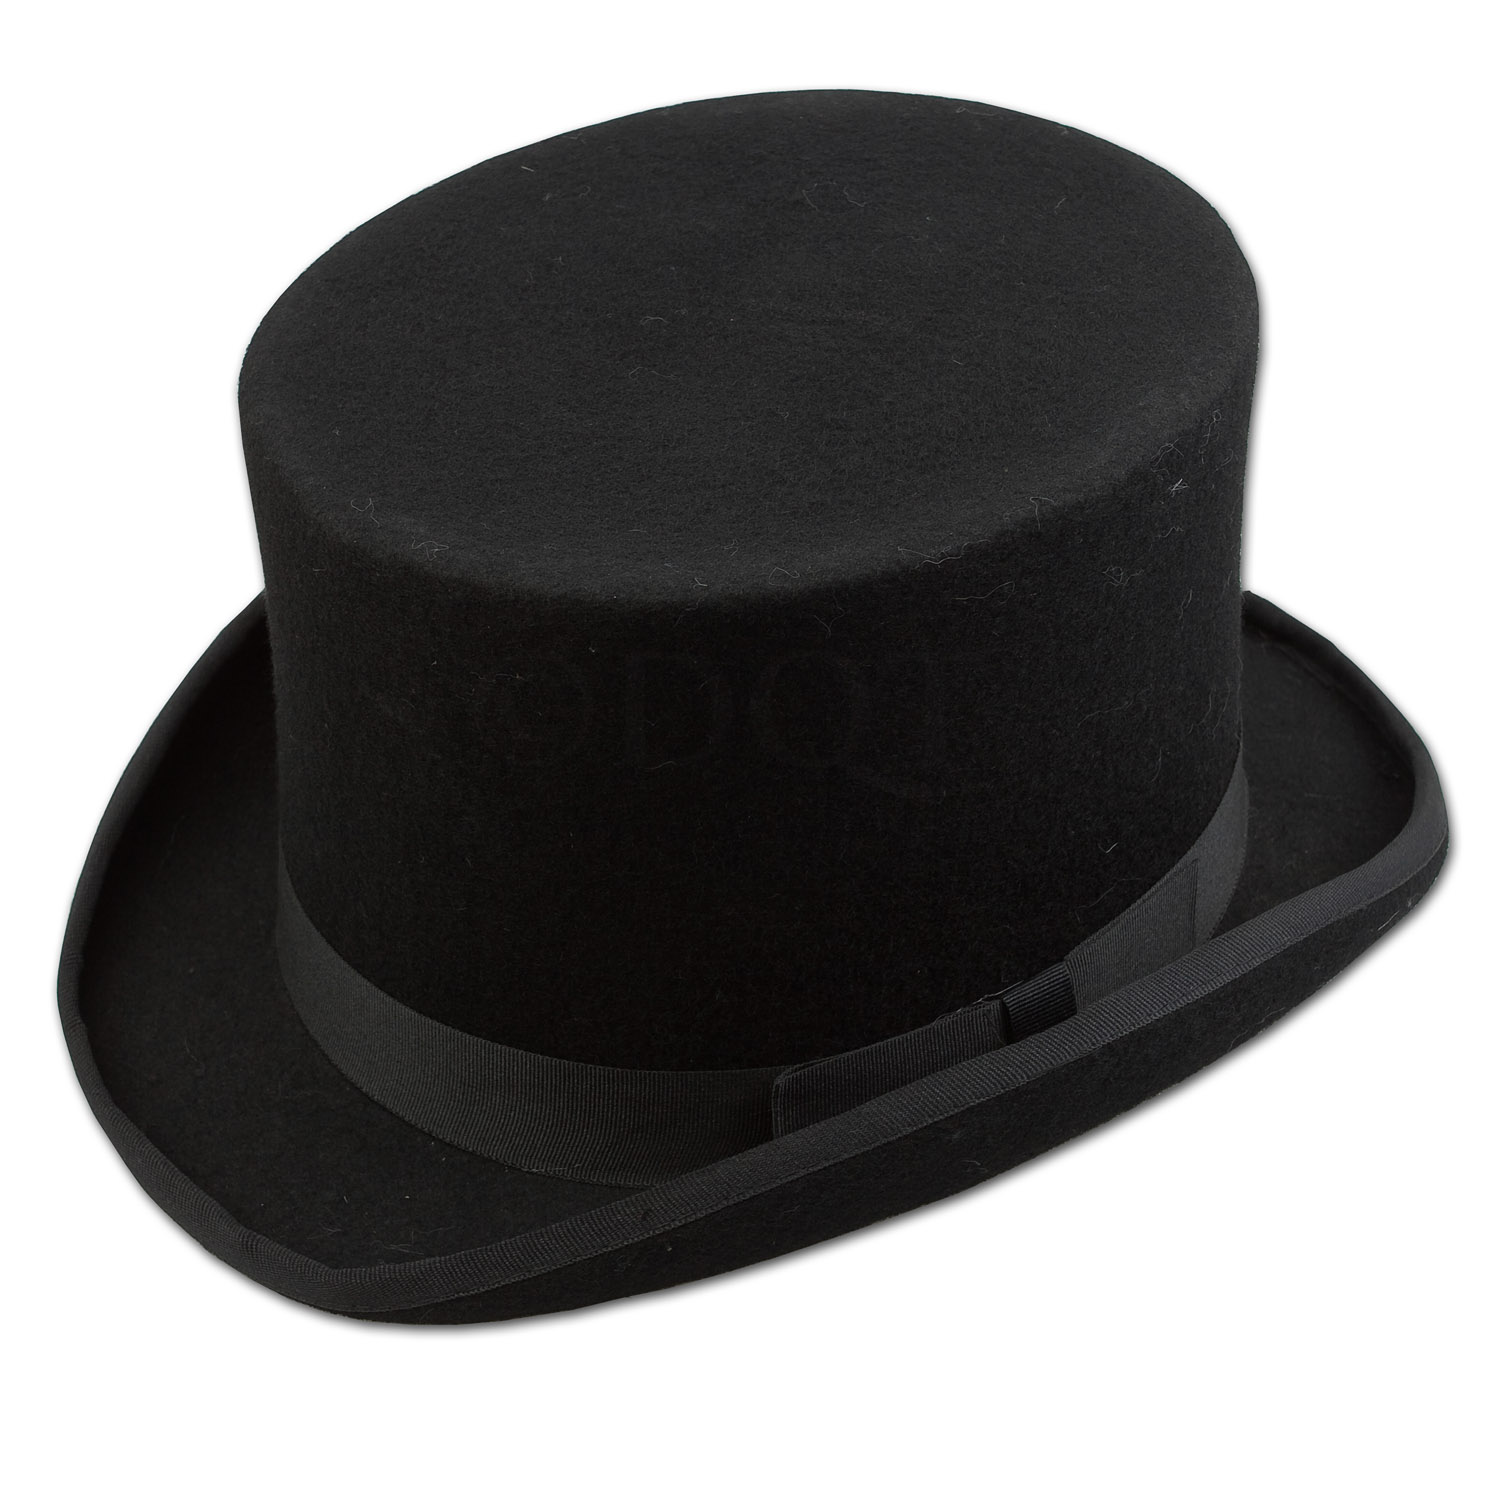 Men's Hats: Free Shipping on orders over $45 at Shop our collection to find the right style for you from tokosepatu.ga Your Online Hats Store! Ferrecci Men's Premium Wool Classic Top Hats. Free Shipping & Returns with Club O Gold* 14 Reviews. More Options. Quick View Star Wars Men's Darth Vader Black Acrylic Beanie and Glove Set. Free.